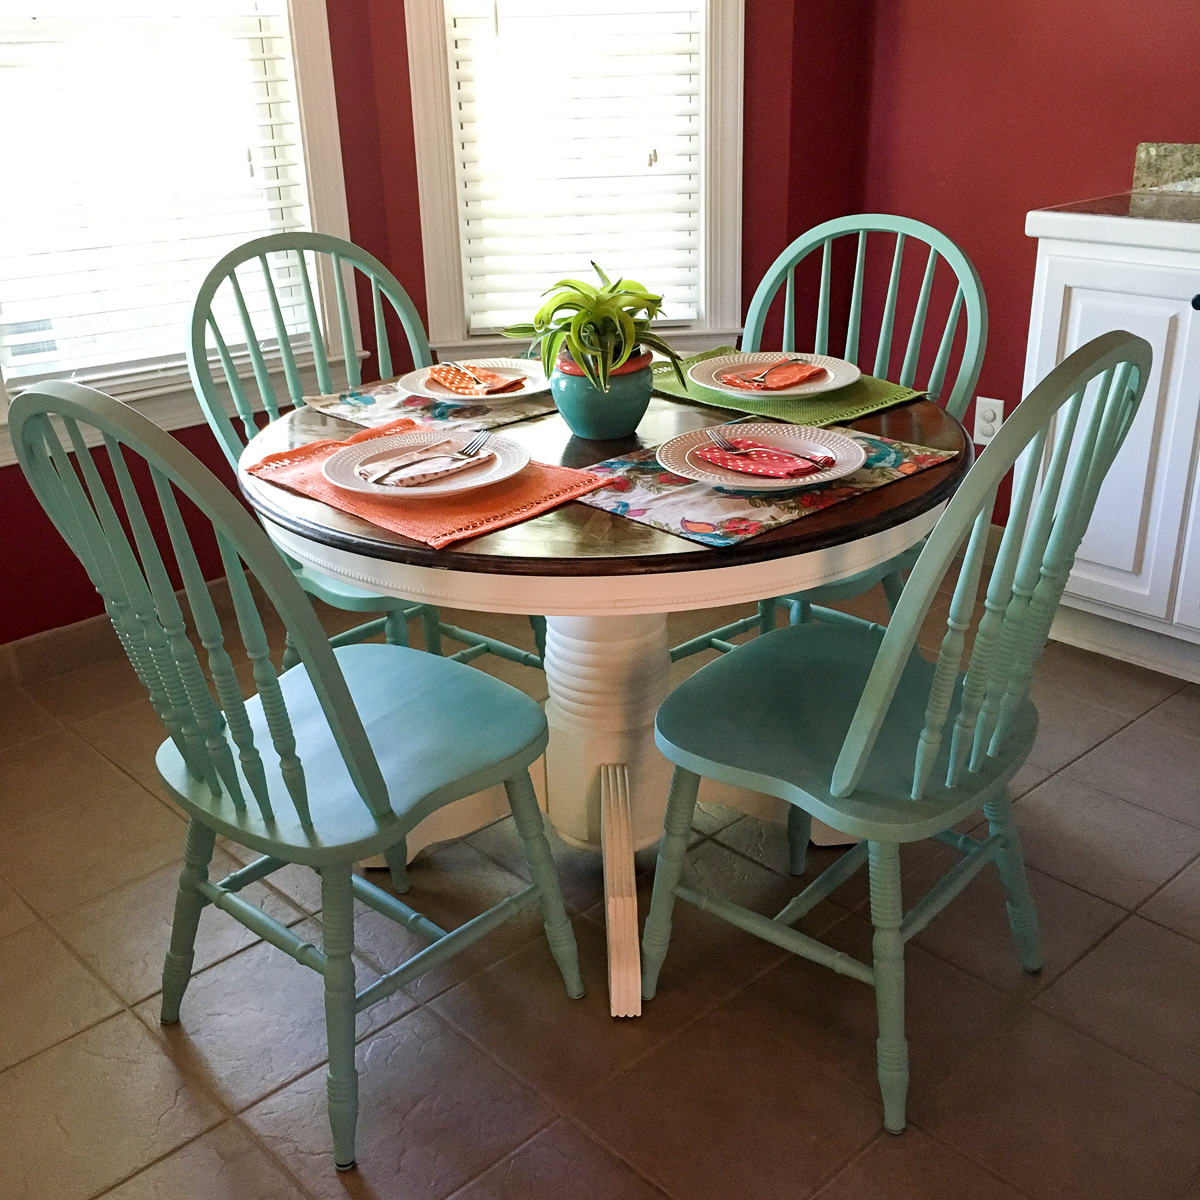 White Kitchen Table Chairs: Turquoise And White Kitchen Table